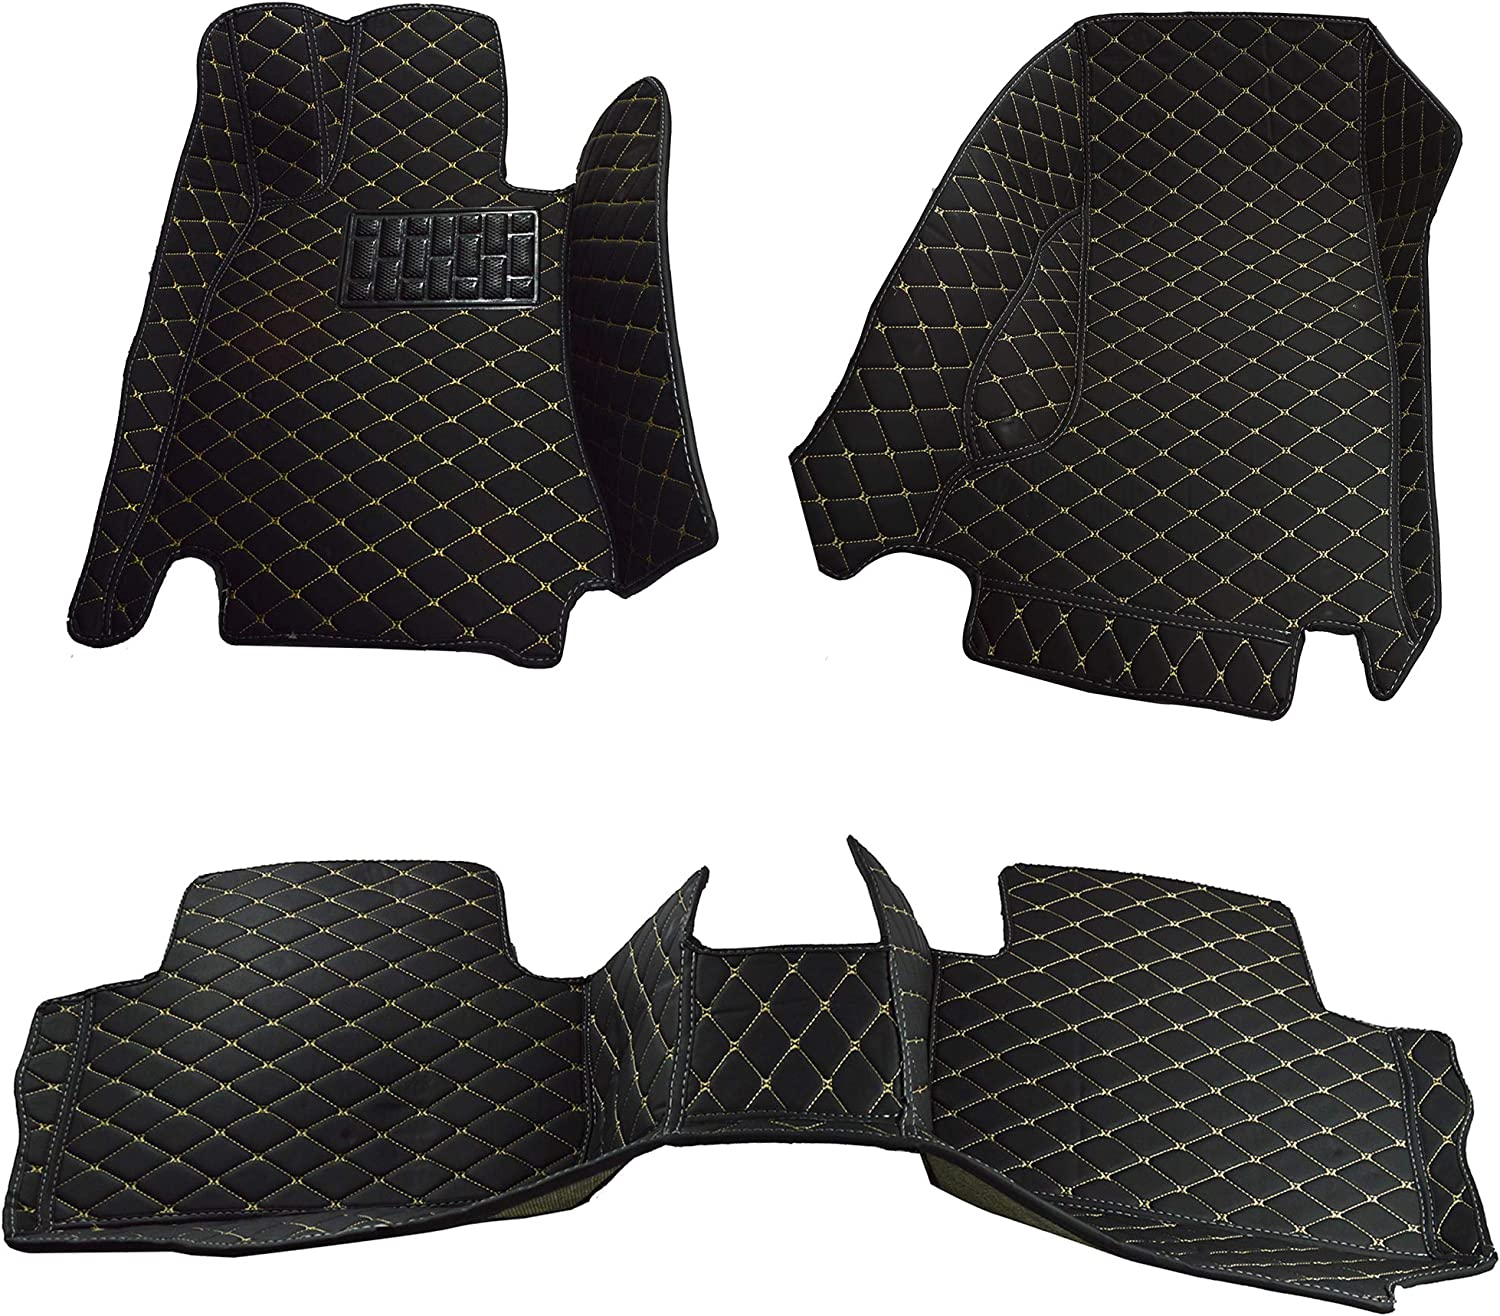 All Weather Heavy Duty Full Coverage Floor Mat Floor Protection Custom Fit Black Single Layer Made in USA Front and Rear for 2019 2020 Audi Q3 SUV